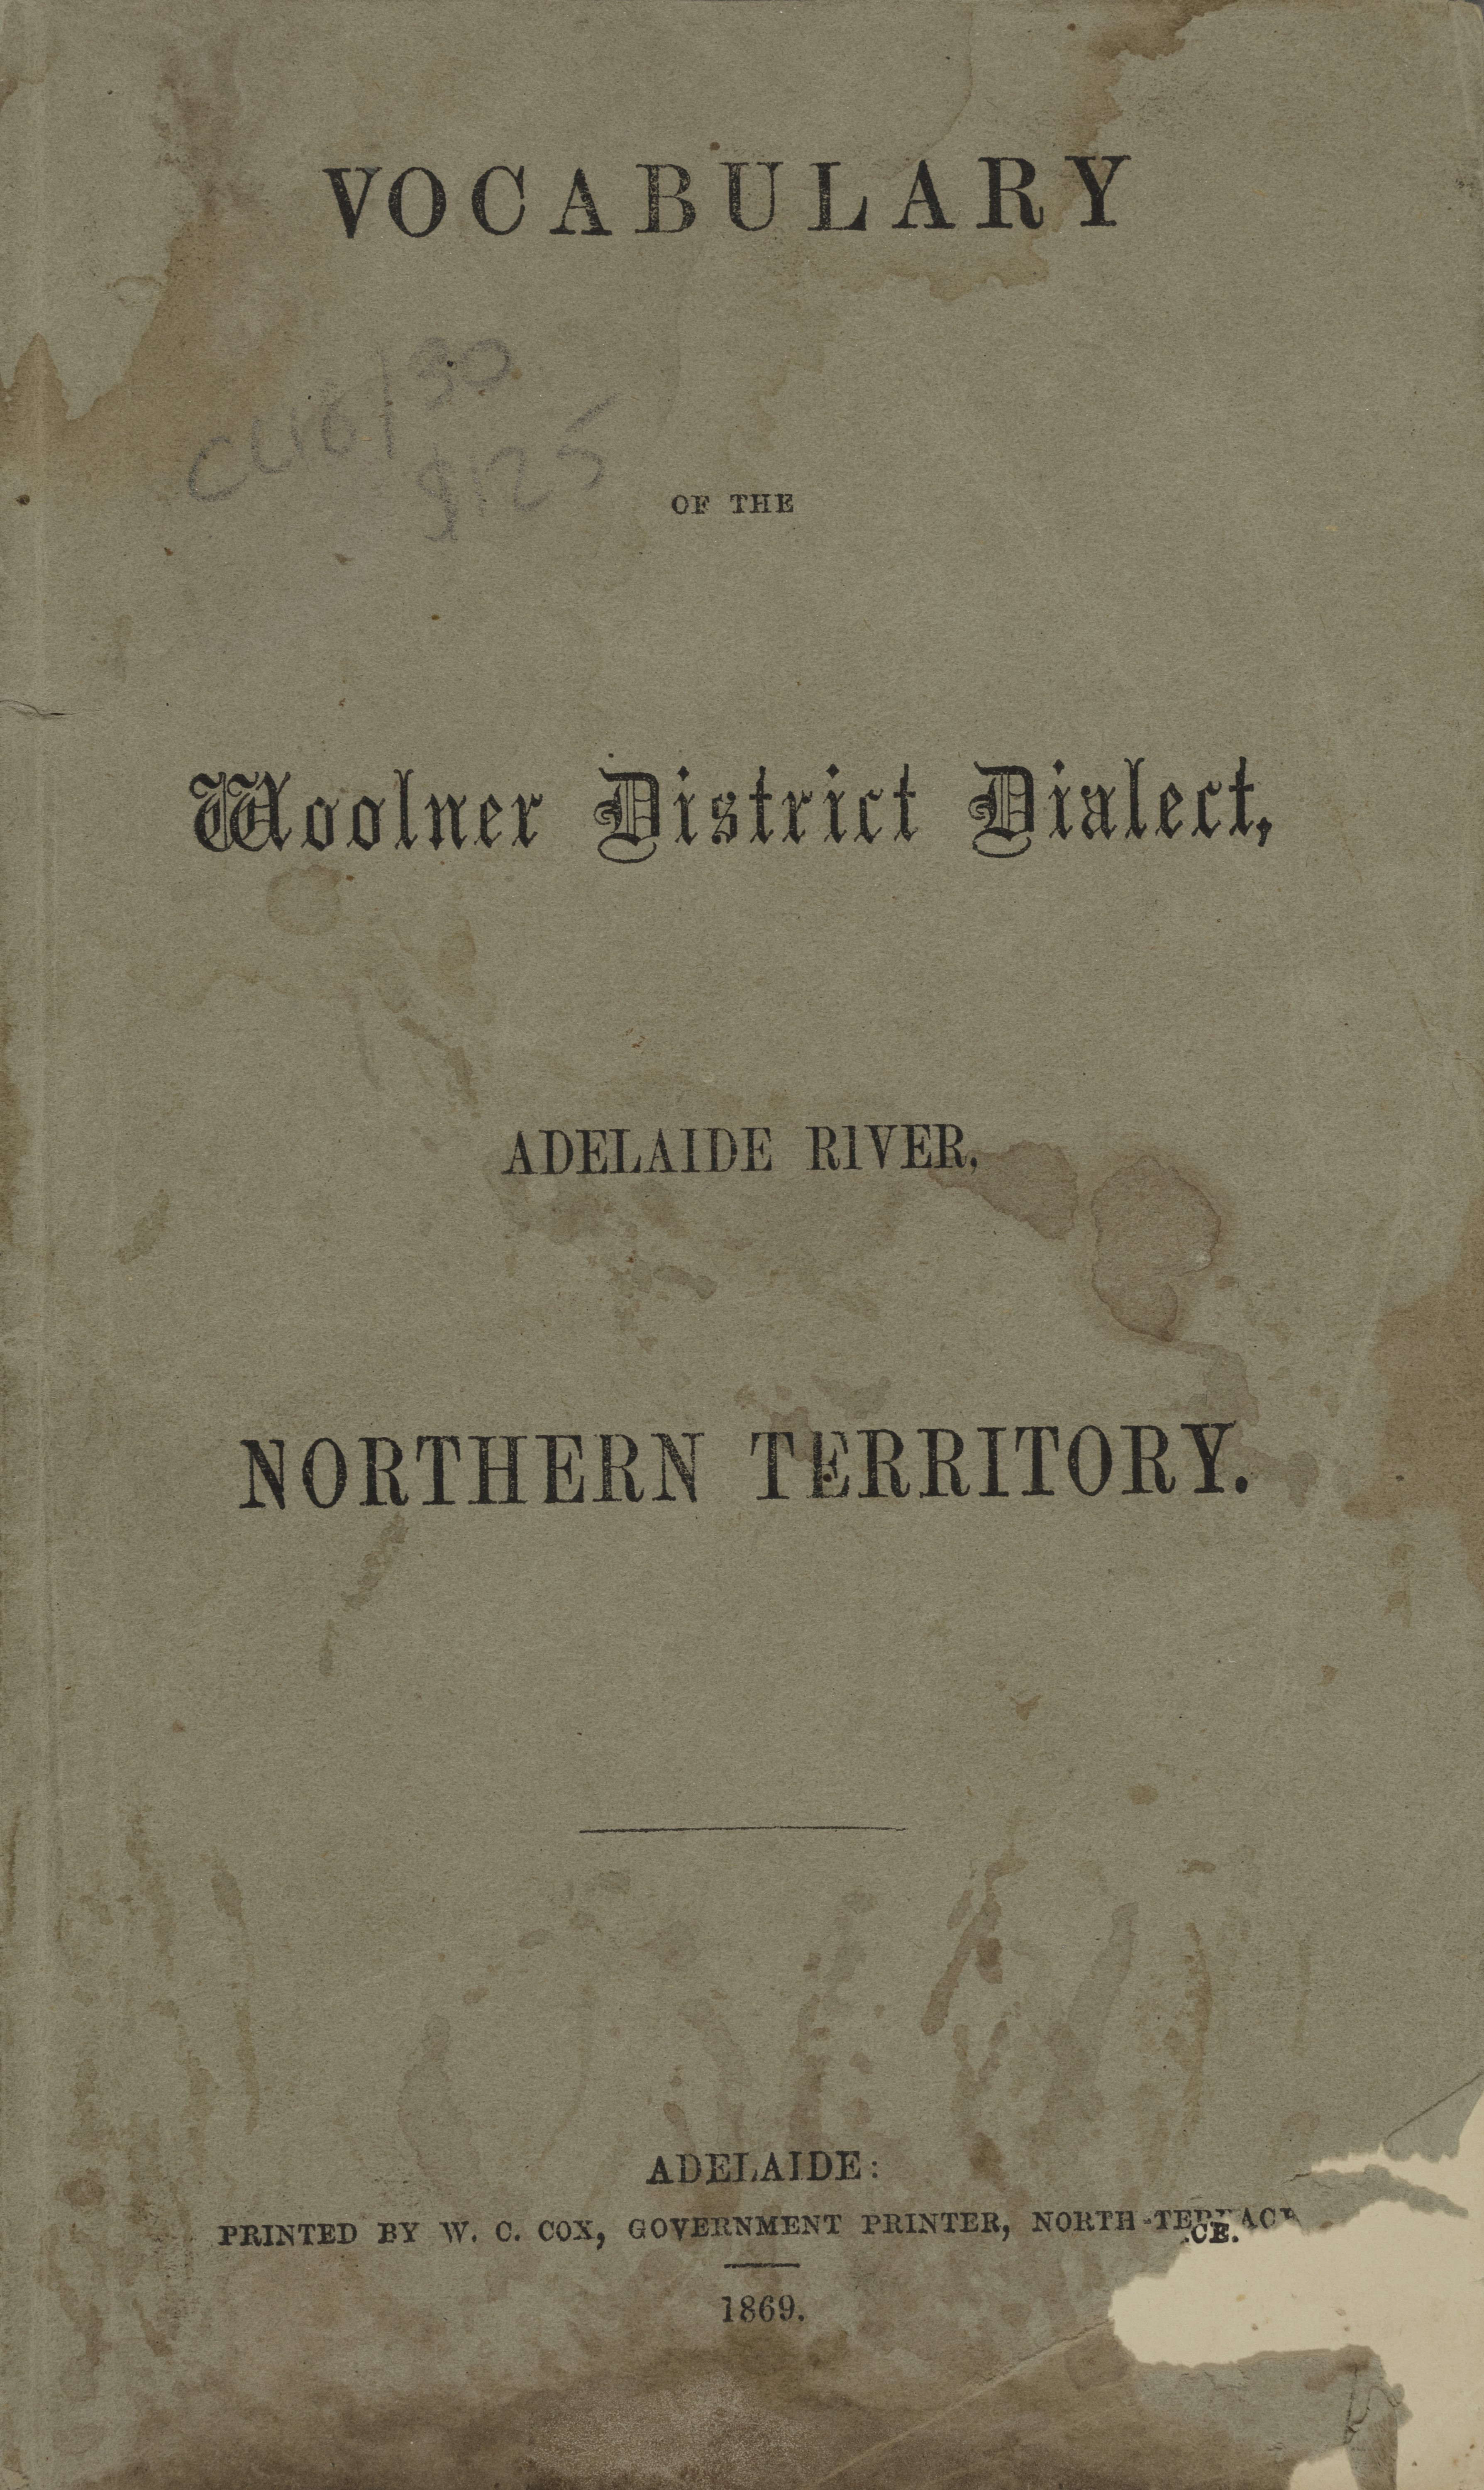 Water-stained front cover of Vocabulary of the Woolner District Dialect, published 1869.